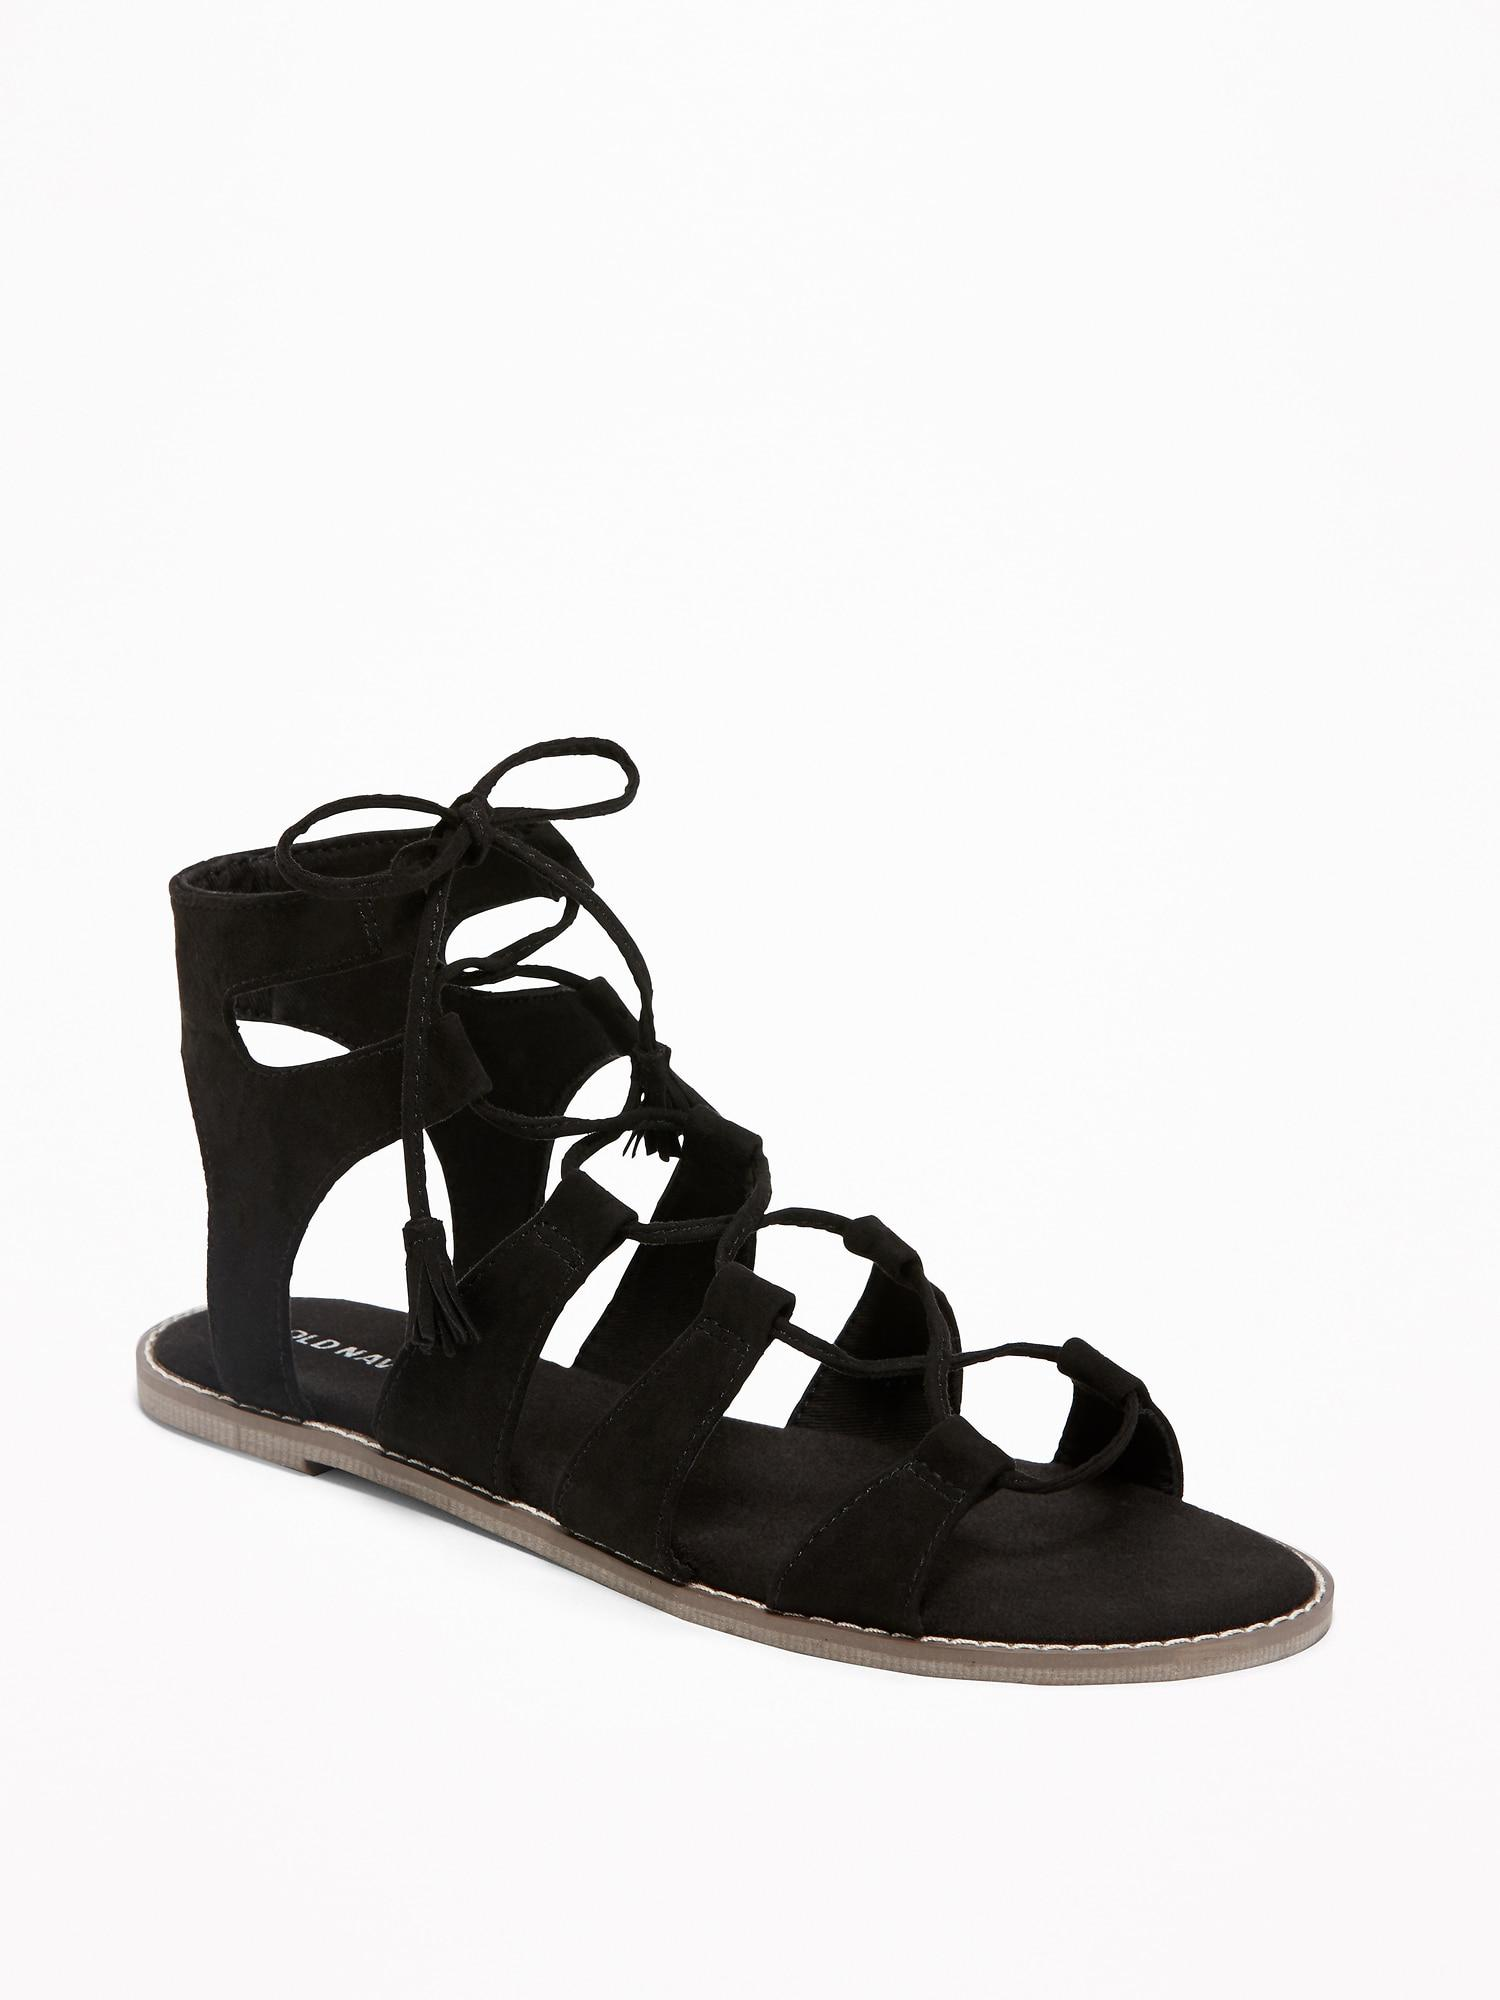 f98b918c9d17 Old Navy - Black Lace-up Gladiator Sandals - Lyst. View fullscreen